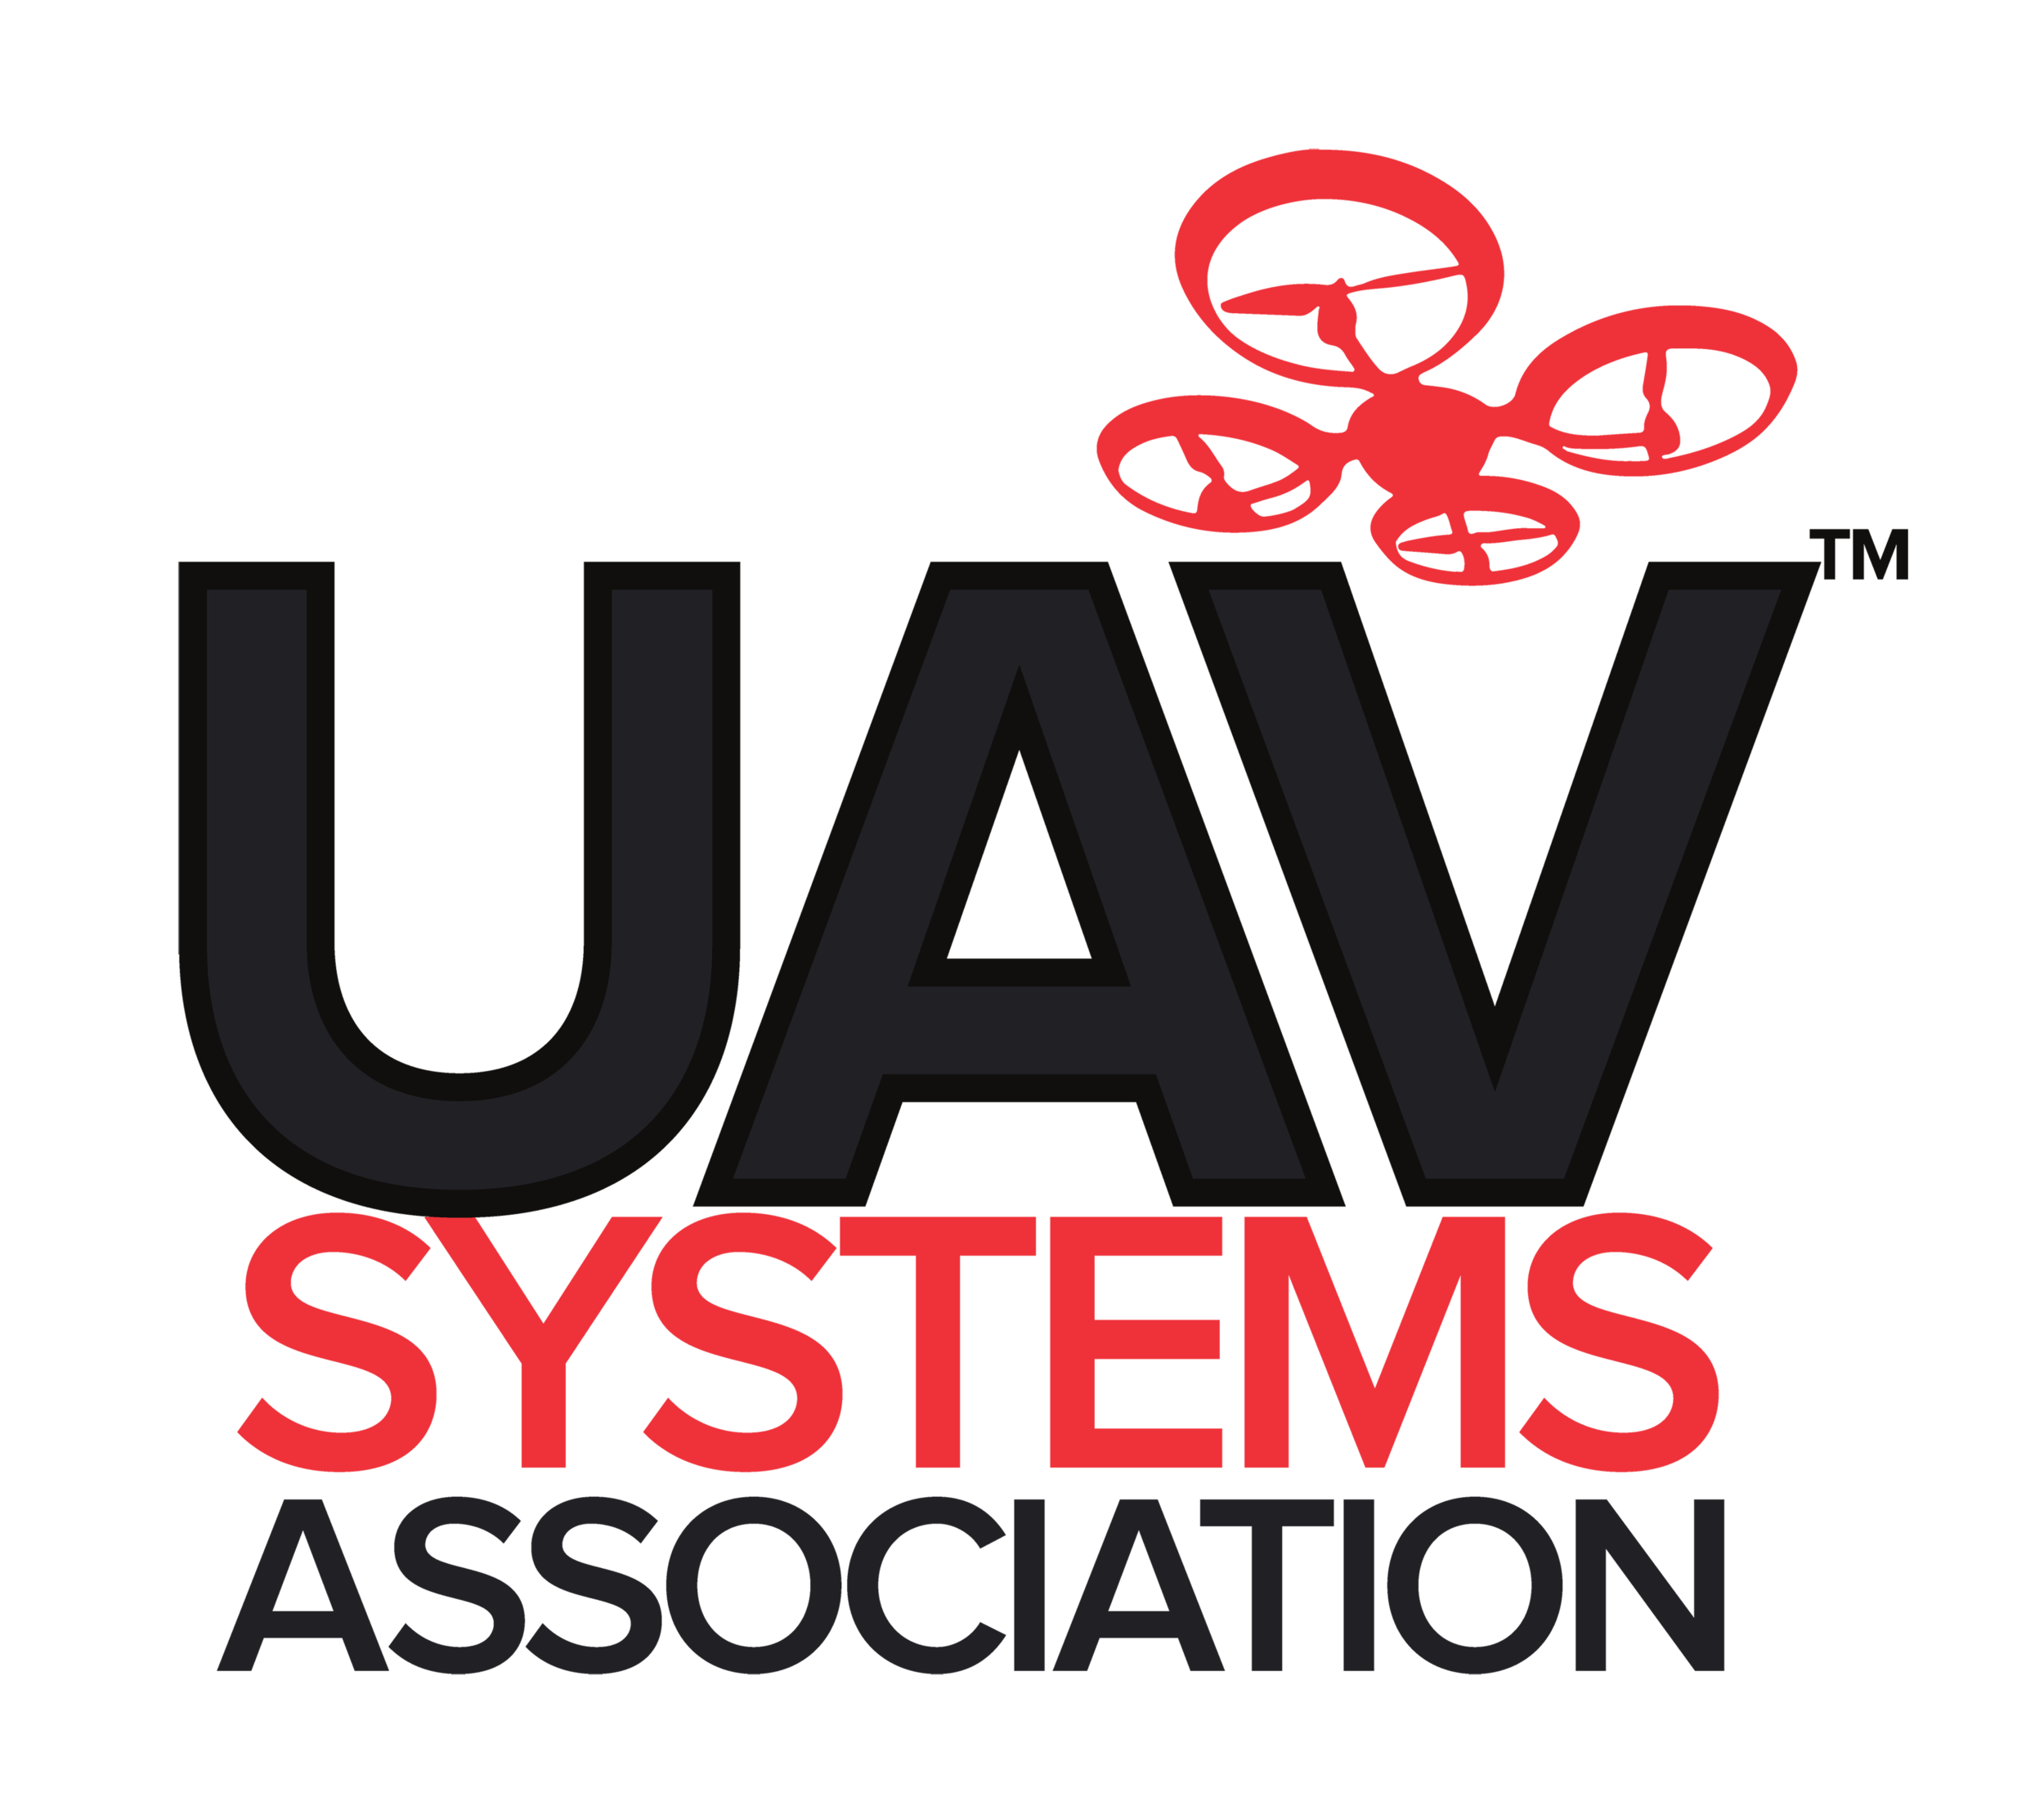 Autonomy Hub is the new headquarters for UAVSA the first drone association of its kind